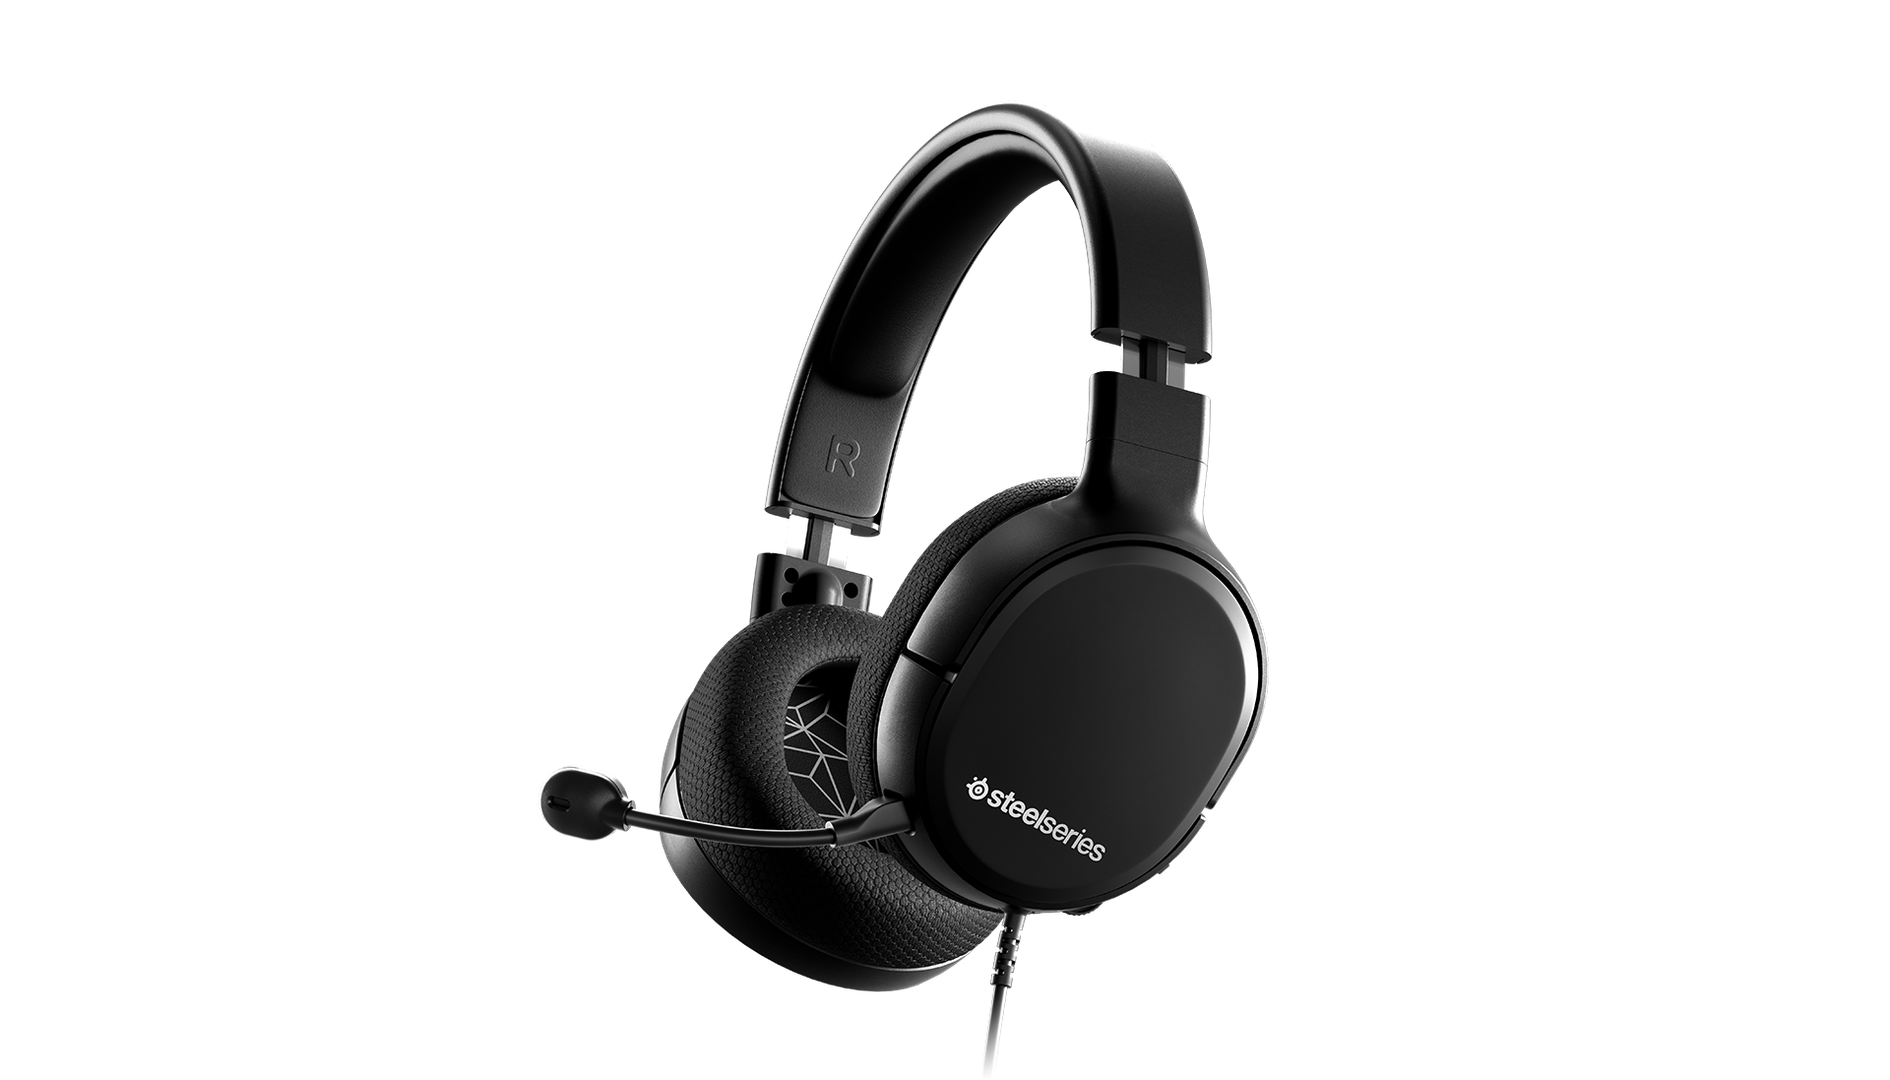 A side view of the black Arctis 1 headset that really looks like it might have caught the headset's good side.